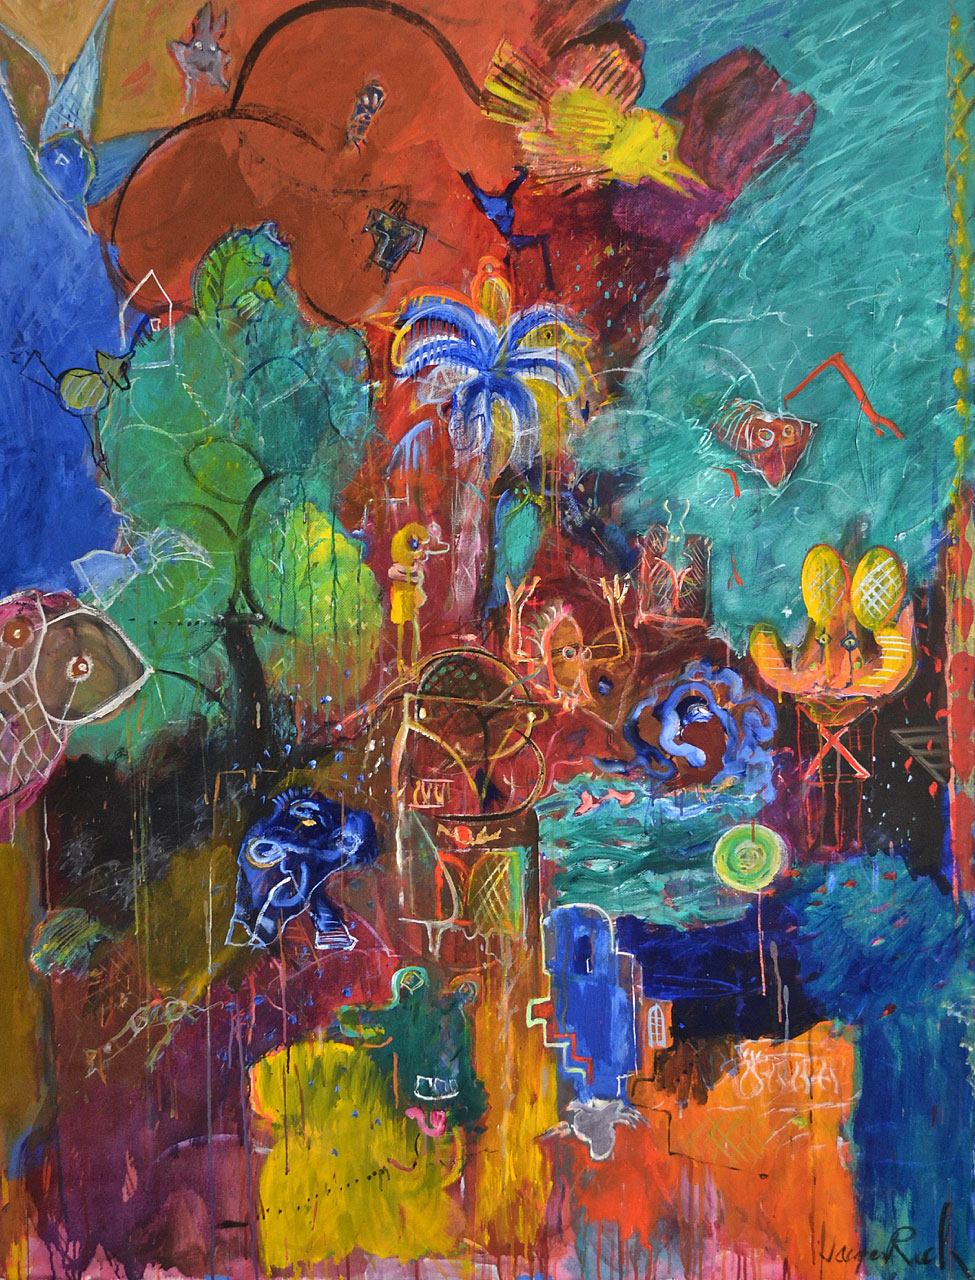 1986 Le Chant Du Crétois, acrylic on canvas, 55 x 72